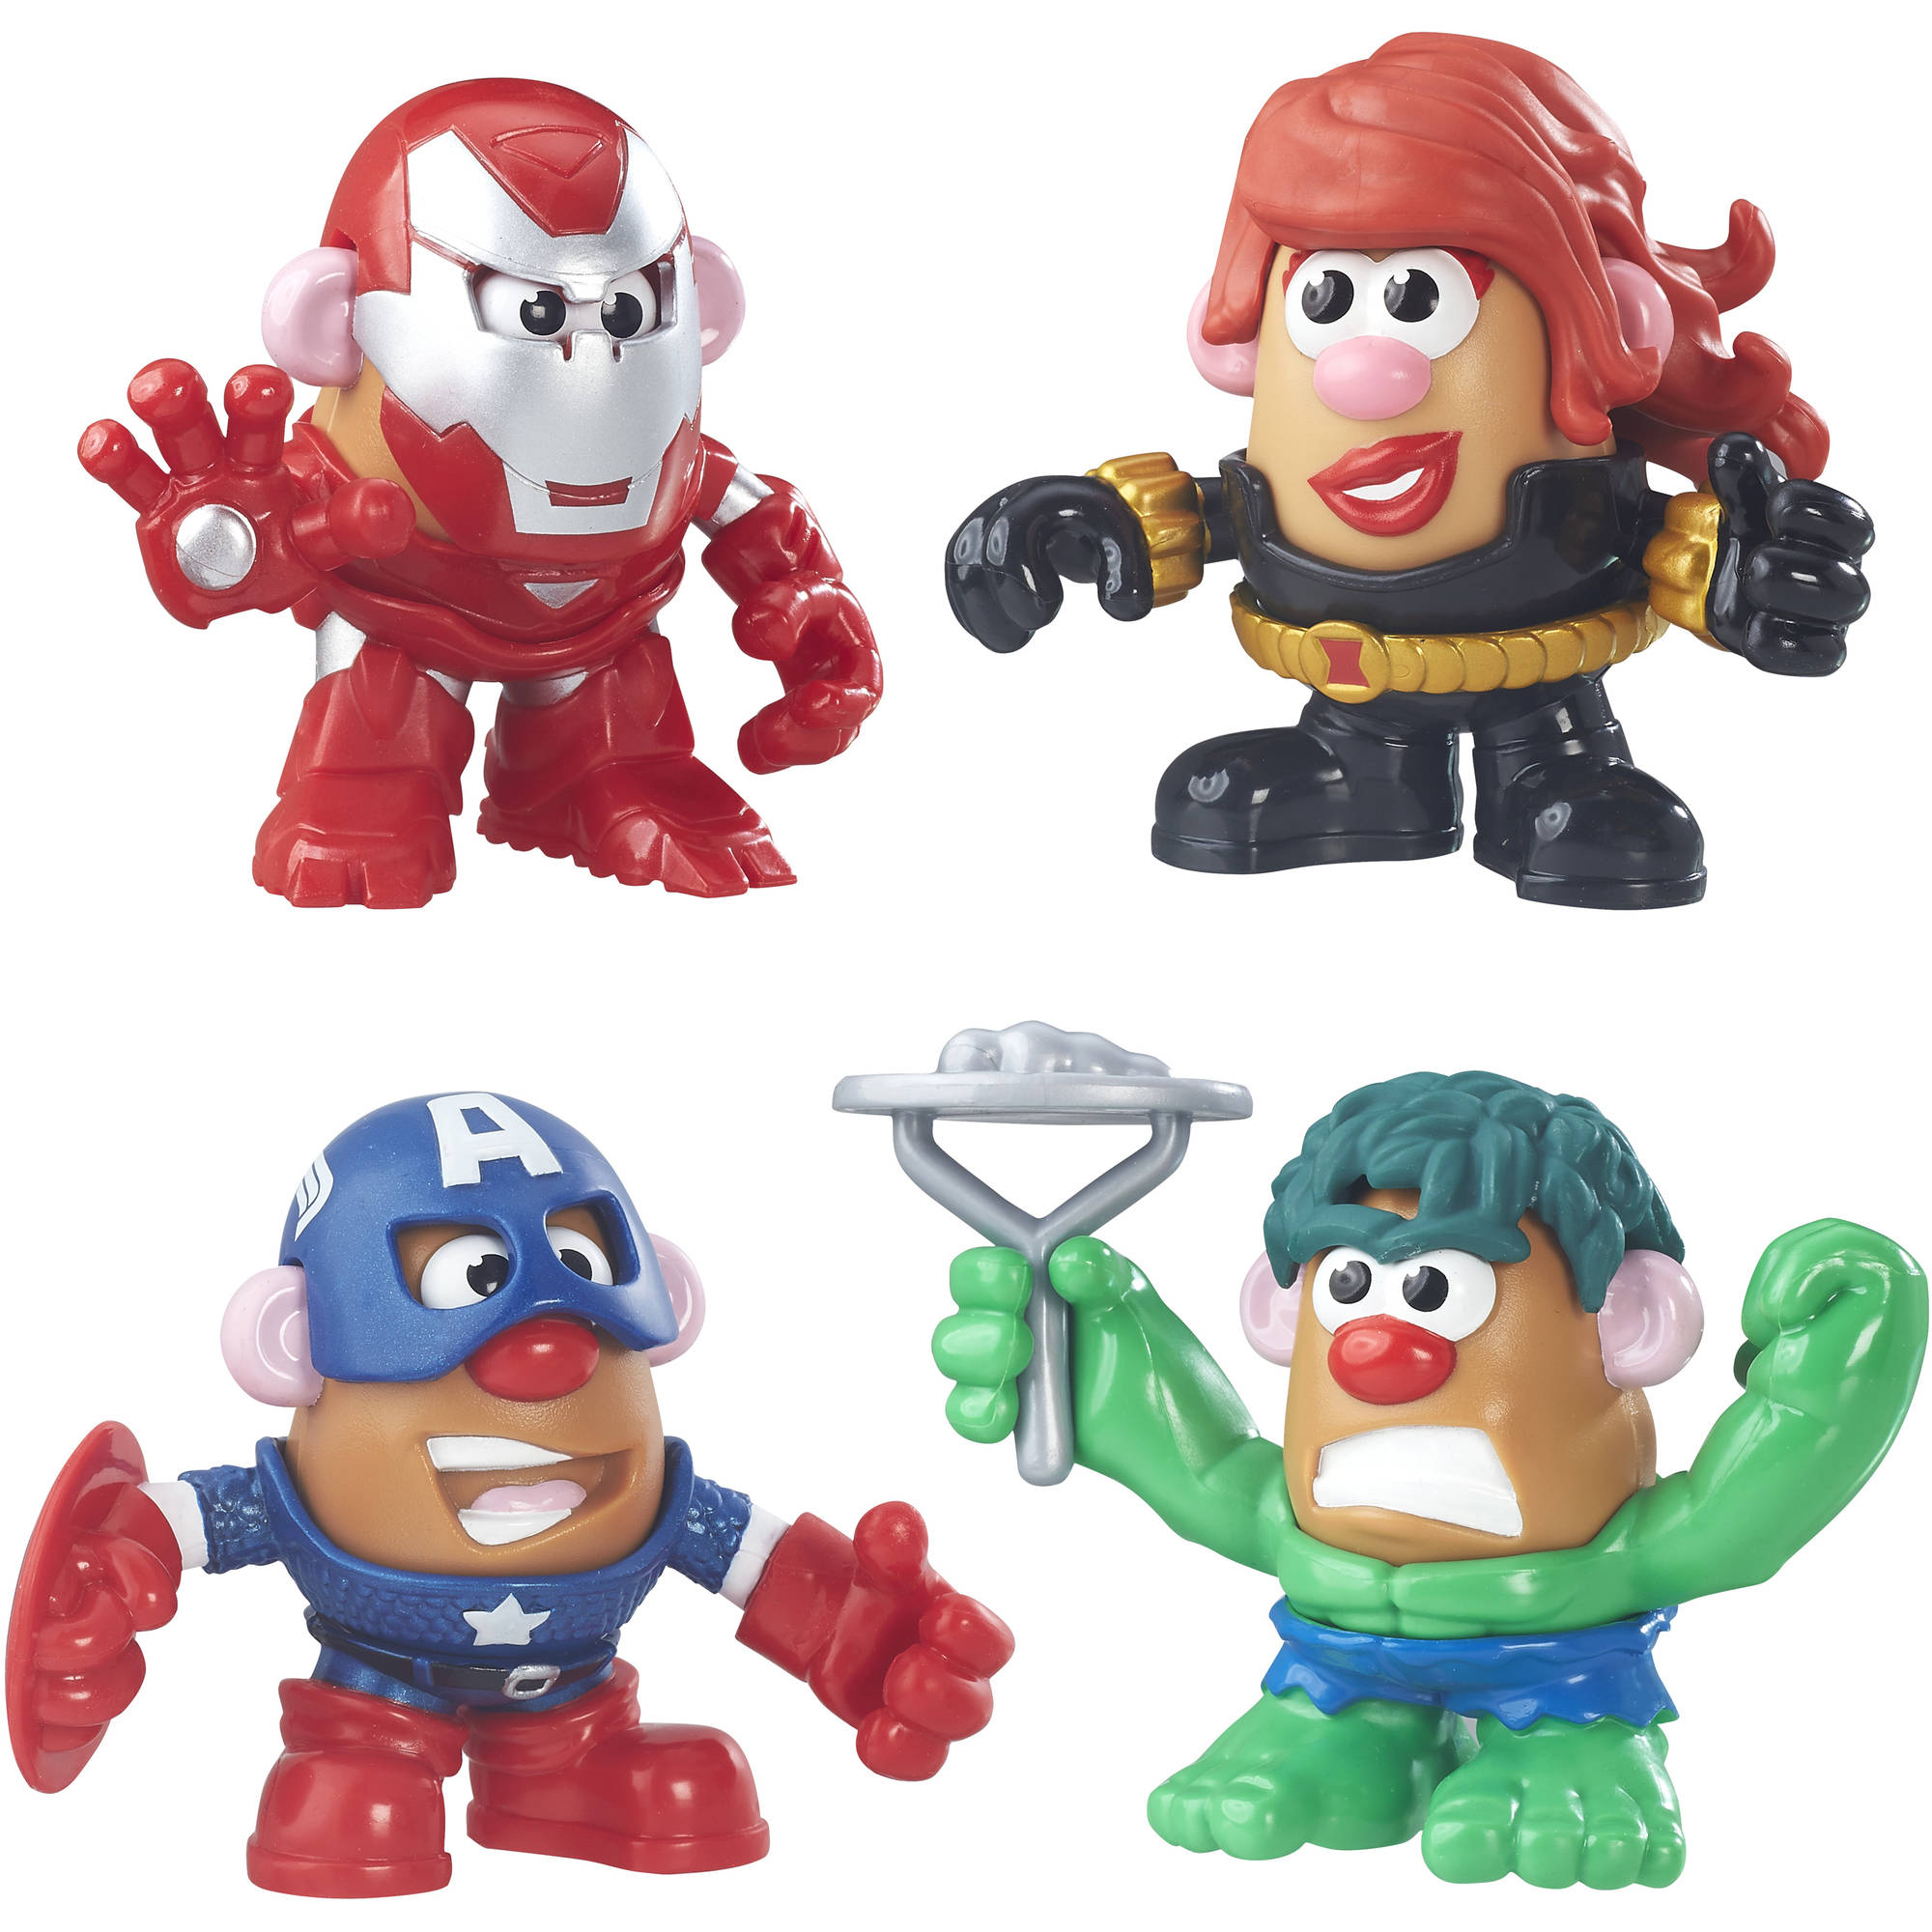 Playskool Friends Mr. Potato Head Marvel Super Rally Pack by Hasbro